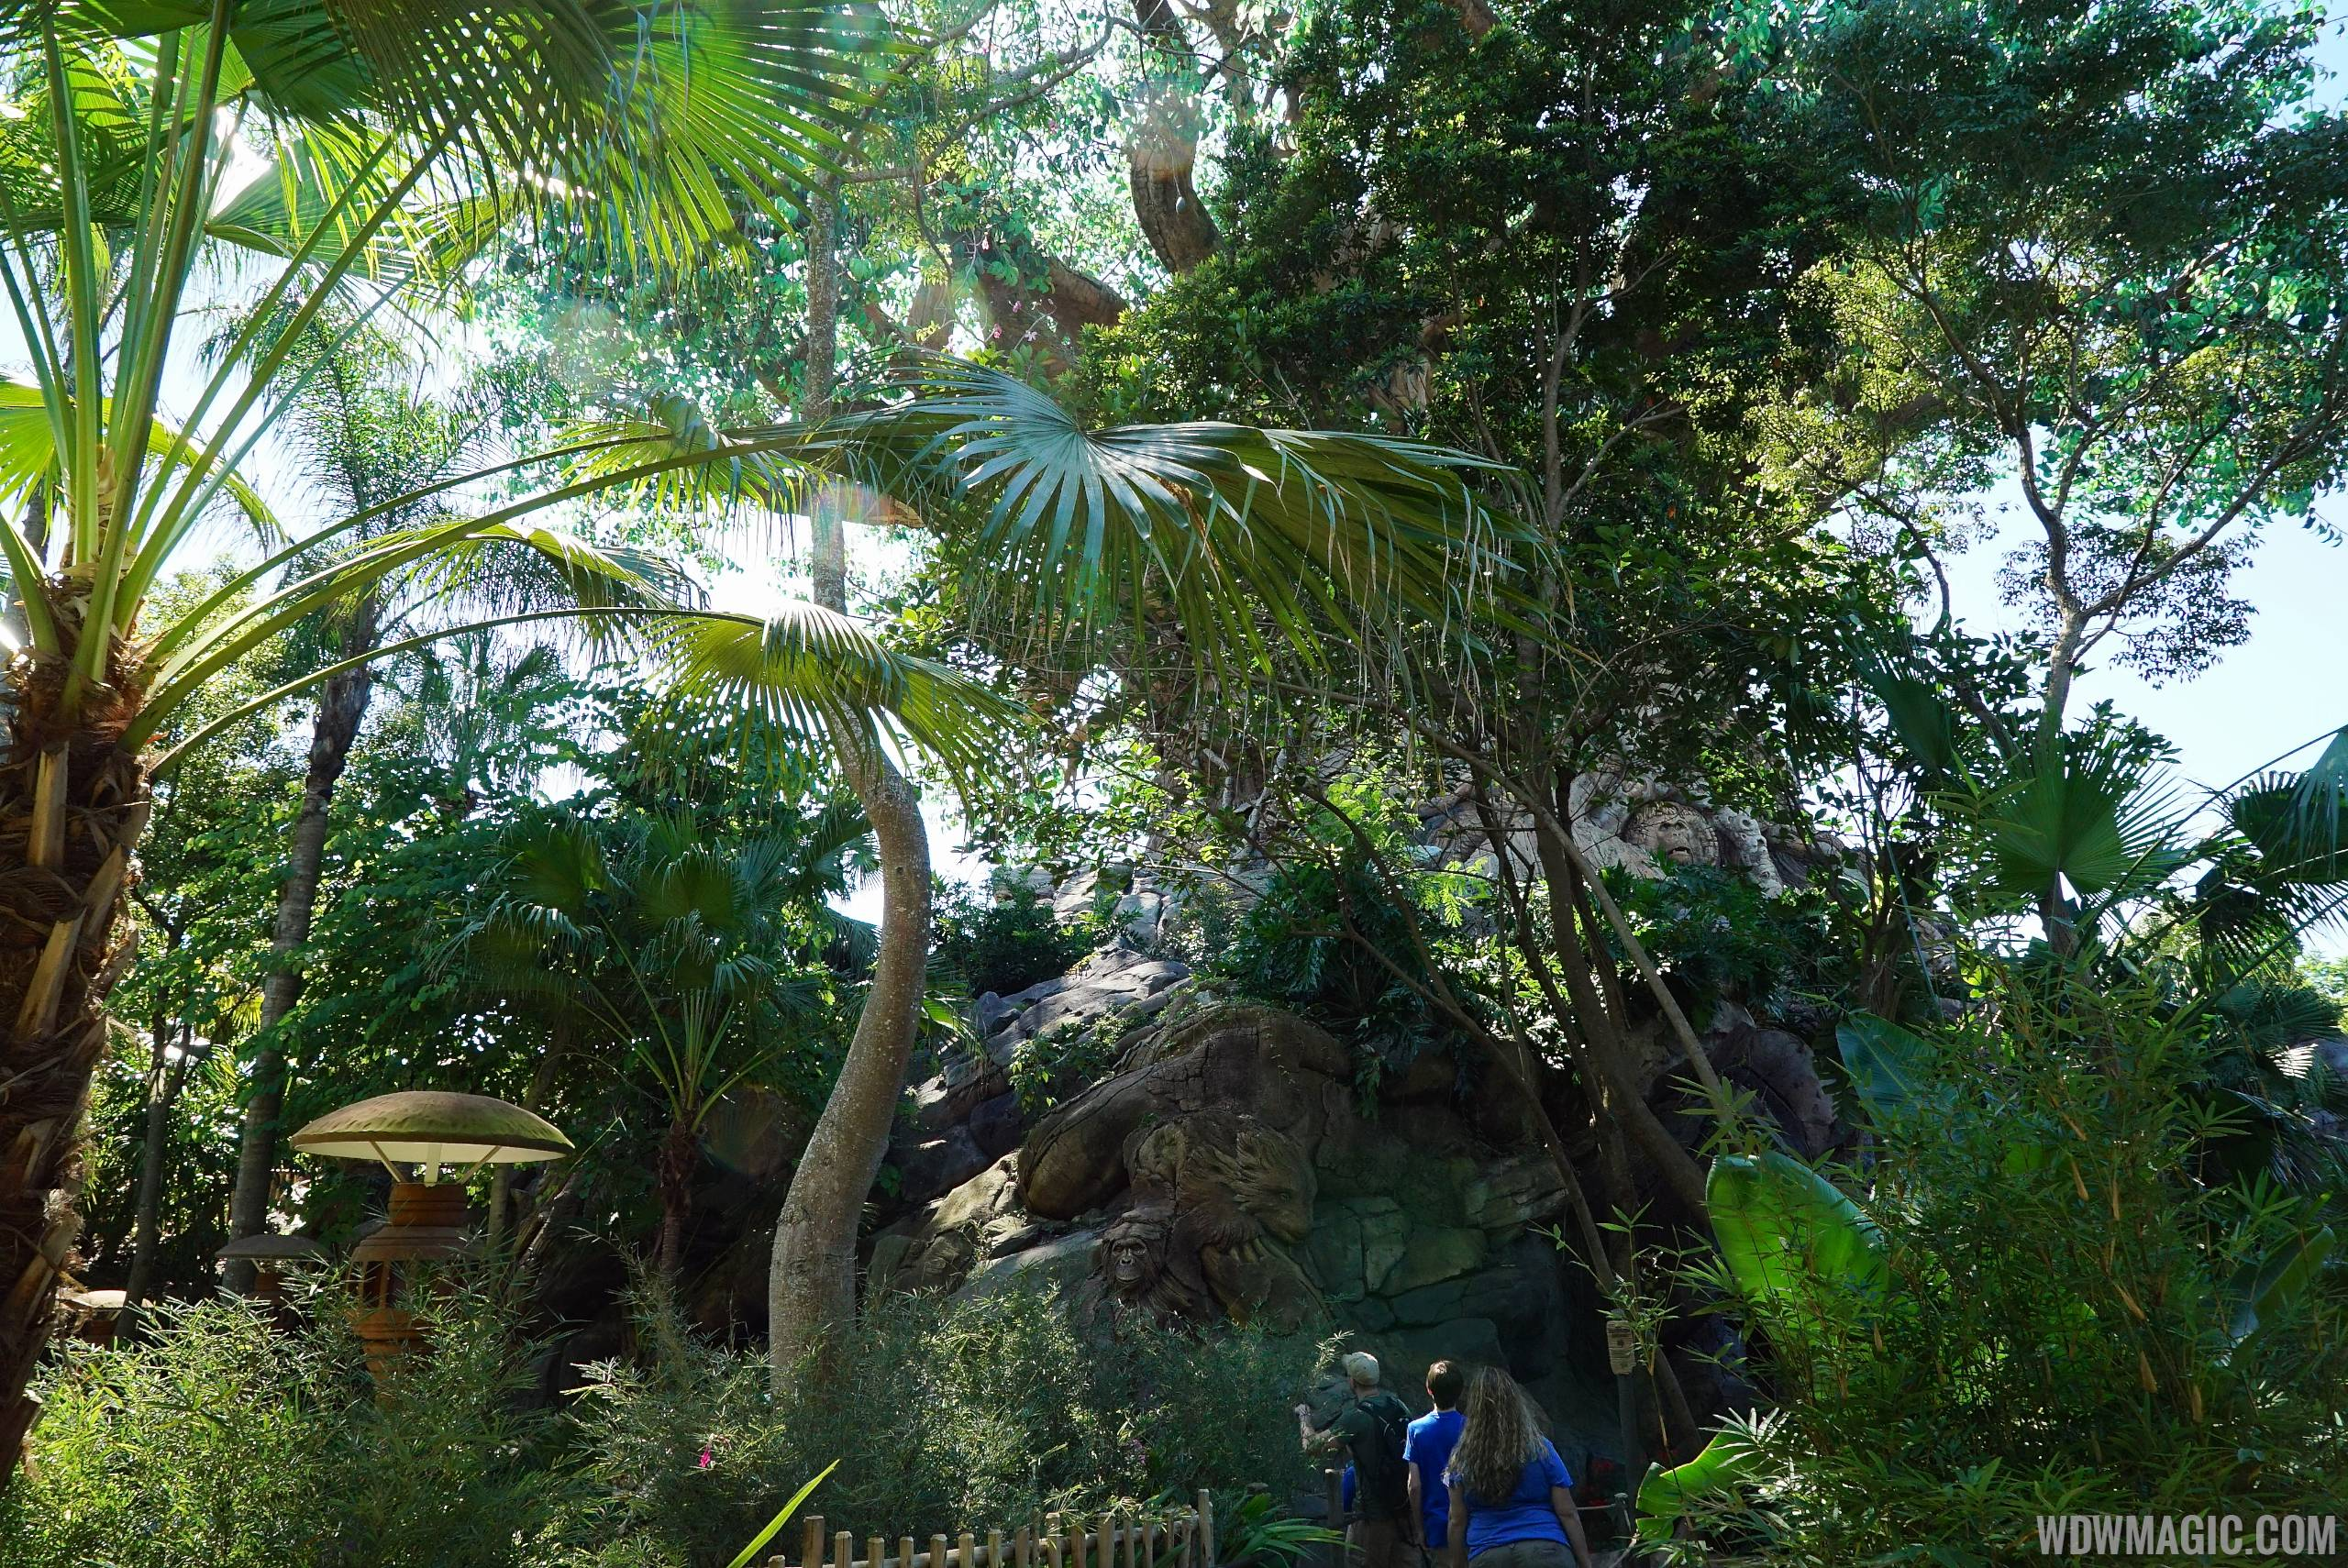 No more overhead nets at Tree of Life